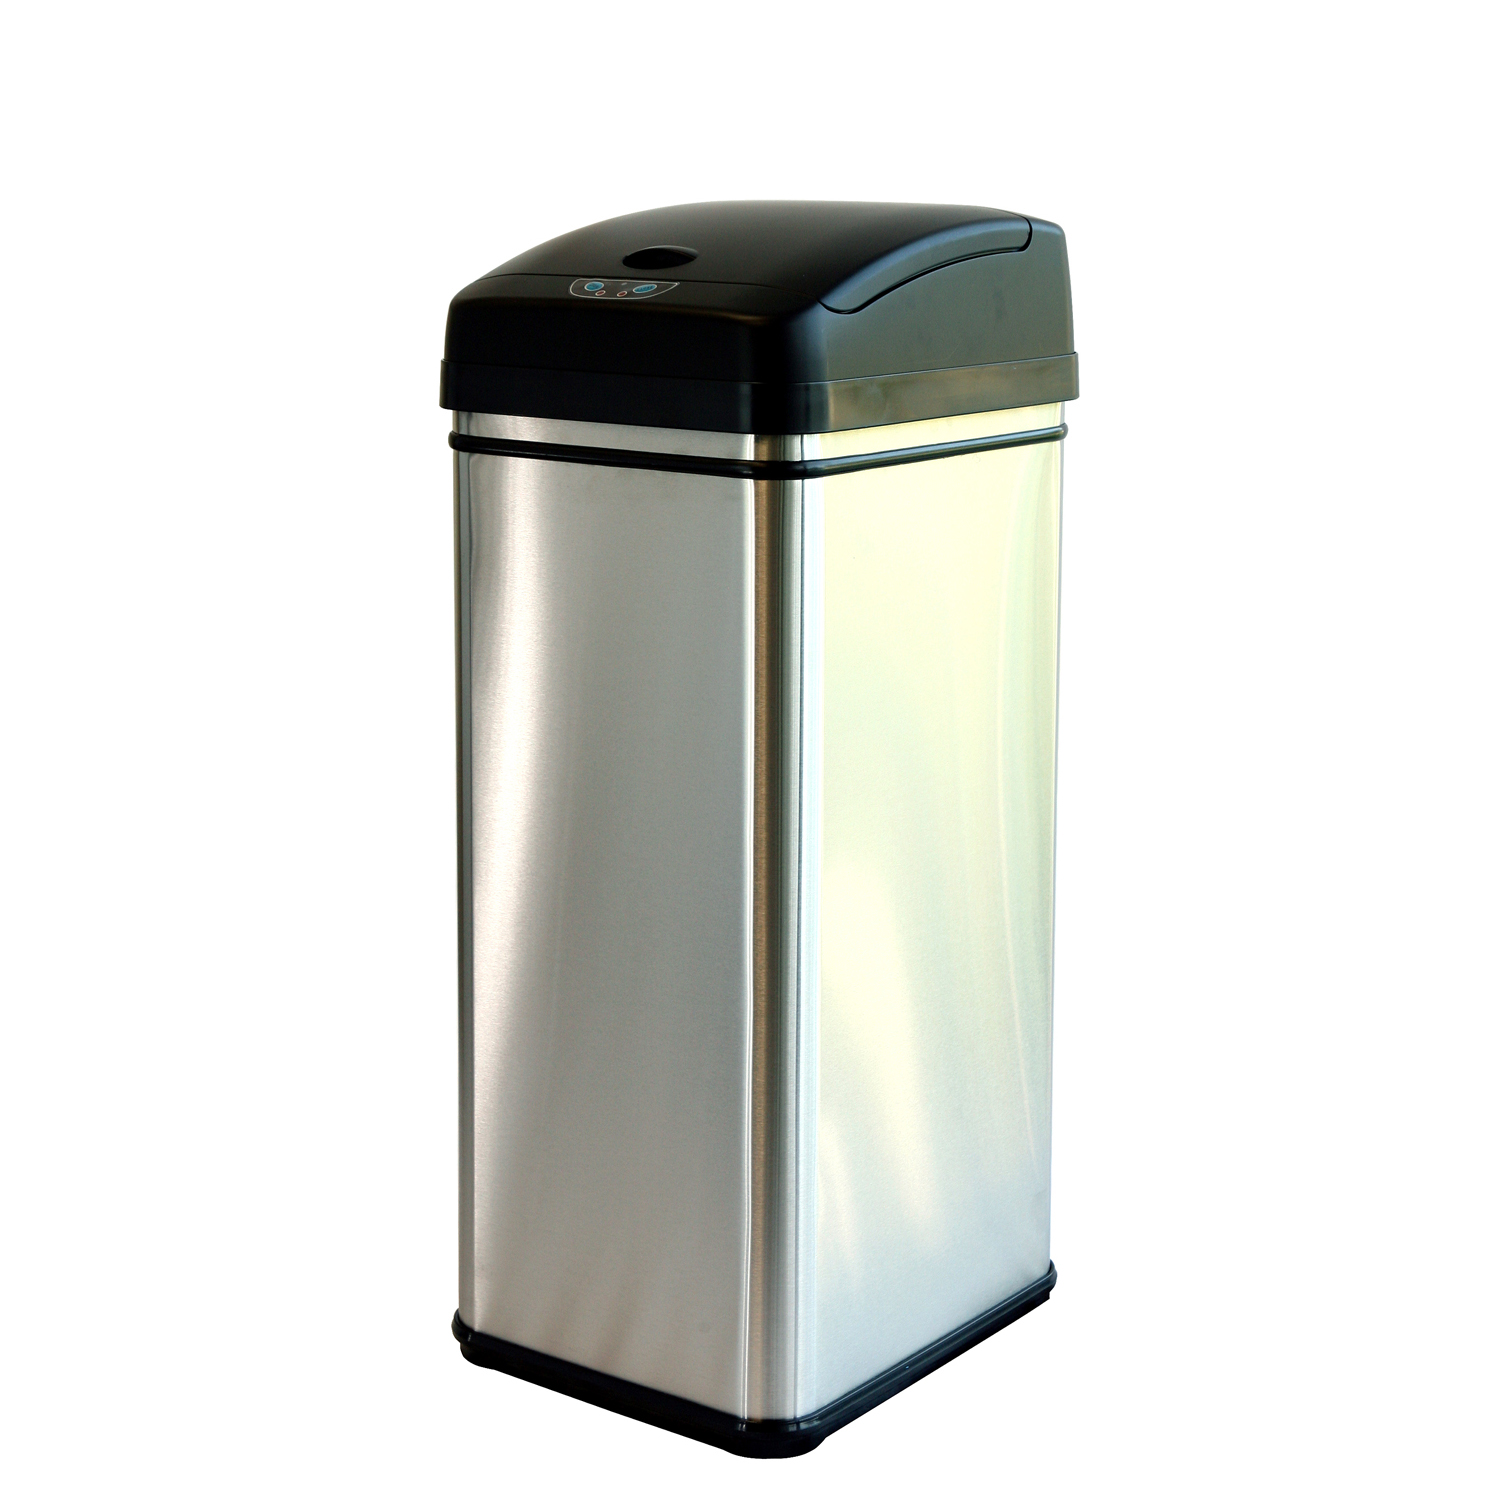 Trash Cans For Kitchen Itouchless Itouchless 16 Gallon Dual Compartment Automatic